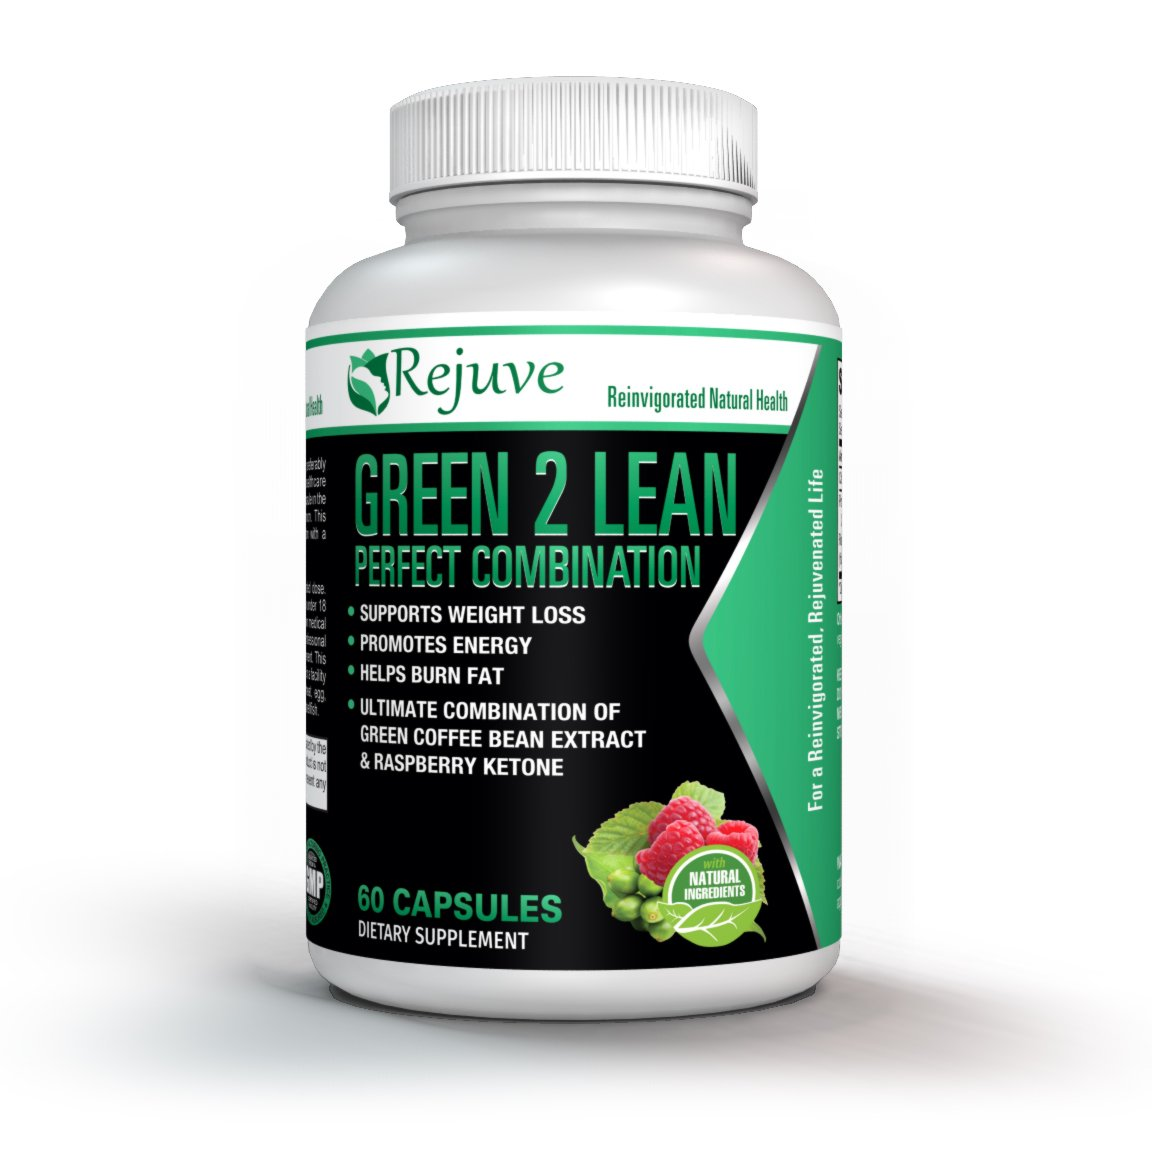 Rejuve Green 2 Lean Green Coffee Bean Supplement for Losing Weight - 100% Natural Formula Containing Green Tea, Raspberry Ketones & Garcinia Cambogia-Boosts Energy & Metabolism-60 Capsules